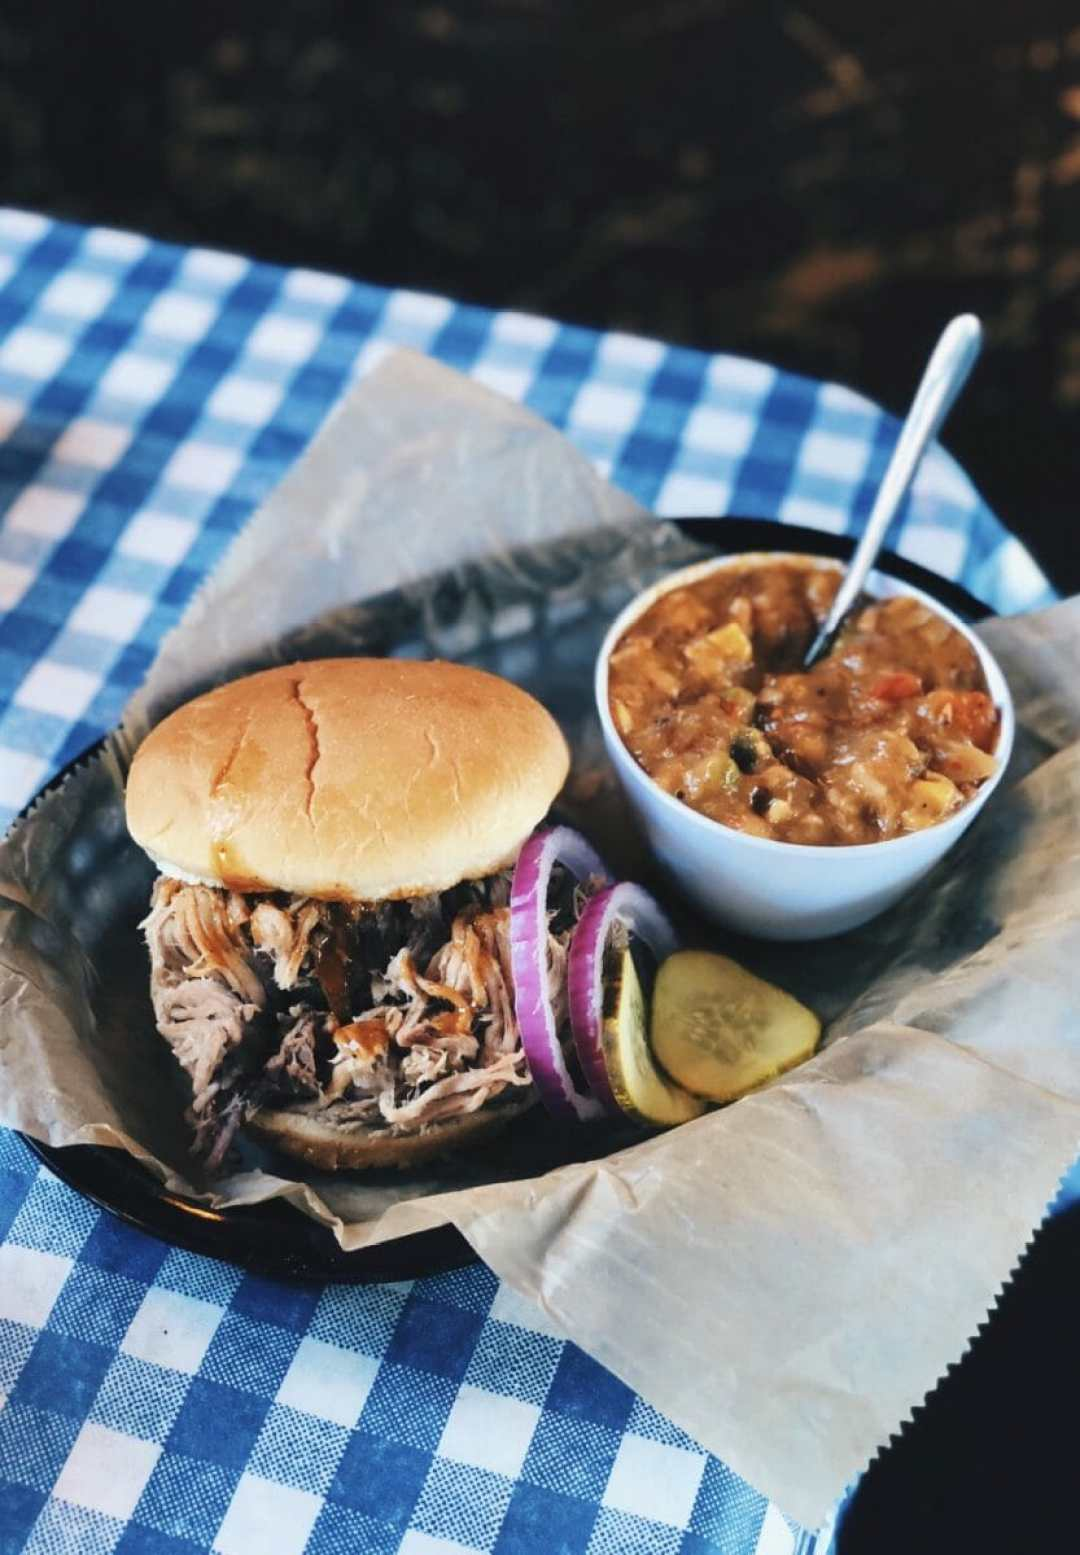 Marks-Feed-Store-Highlands-BBQ-Sandwich-Pulled-Pork